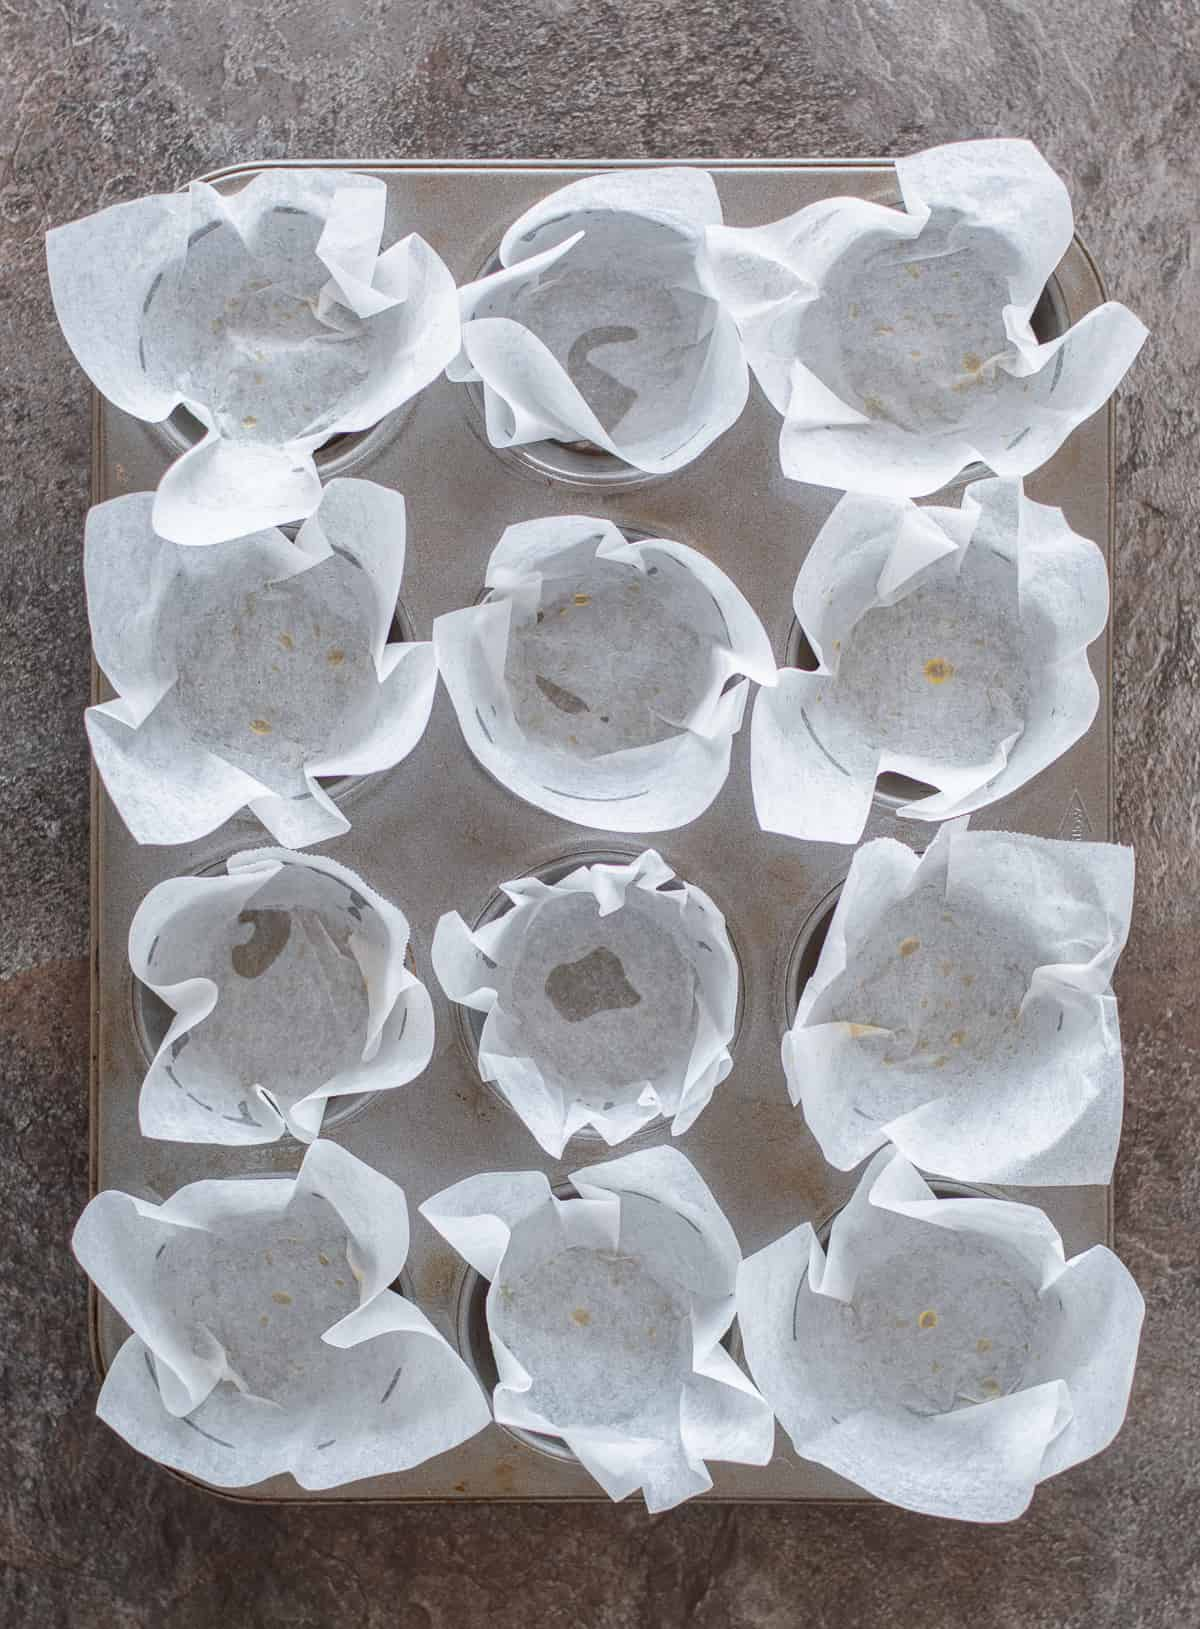 12 Homemade muffins cases in muffin tin